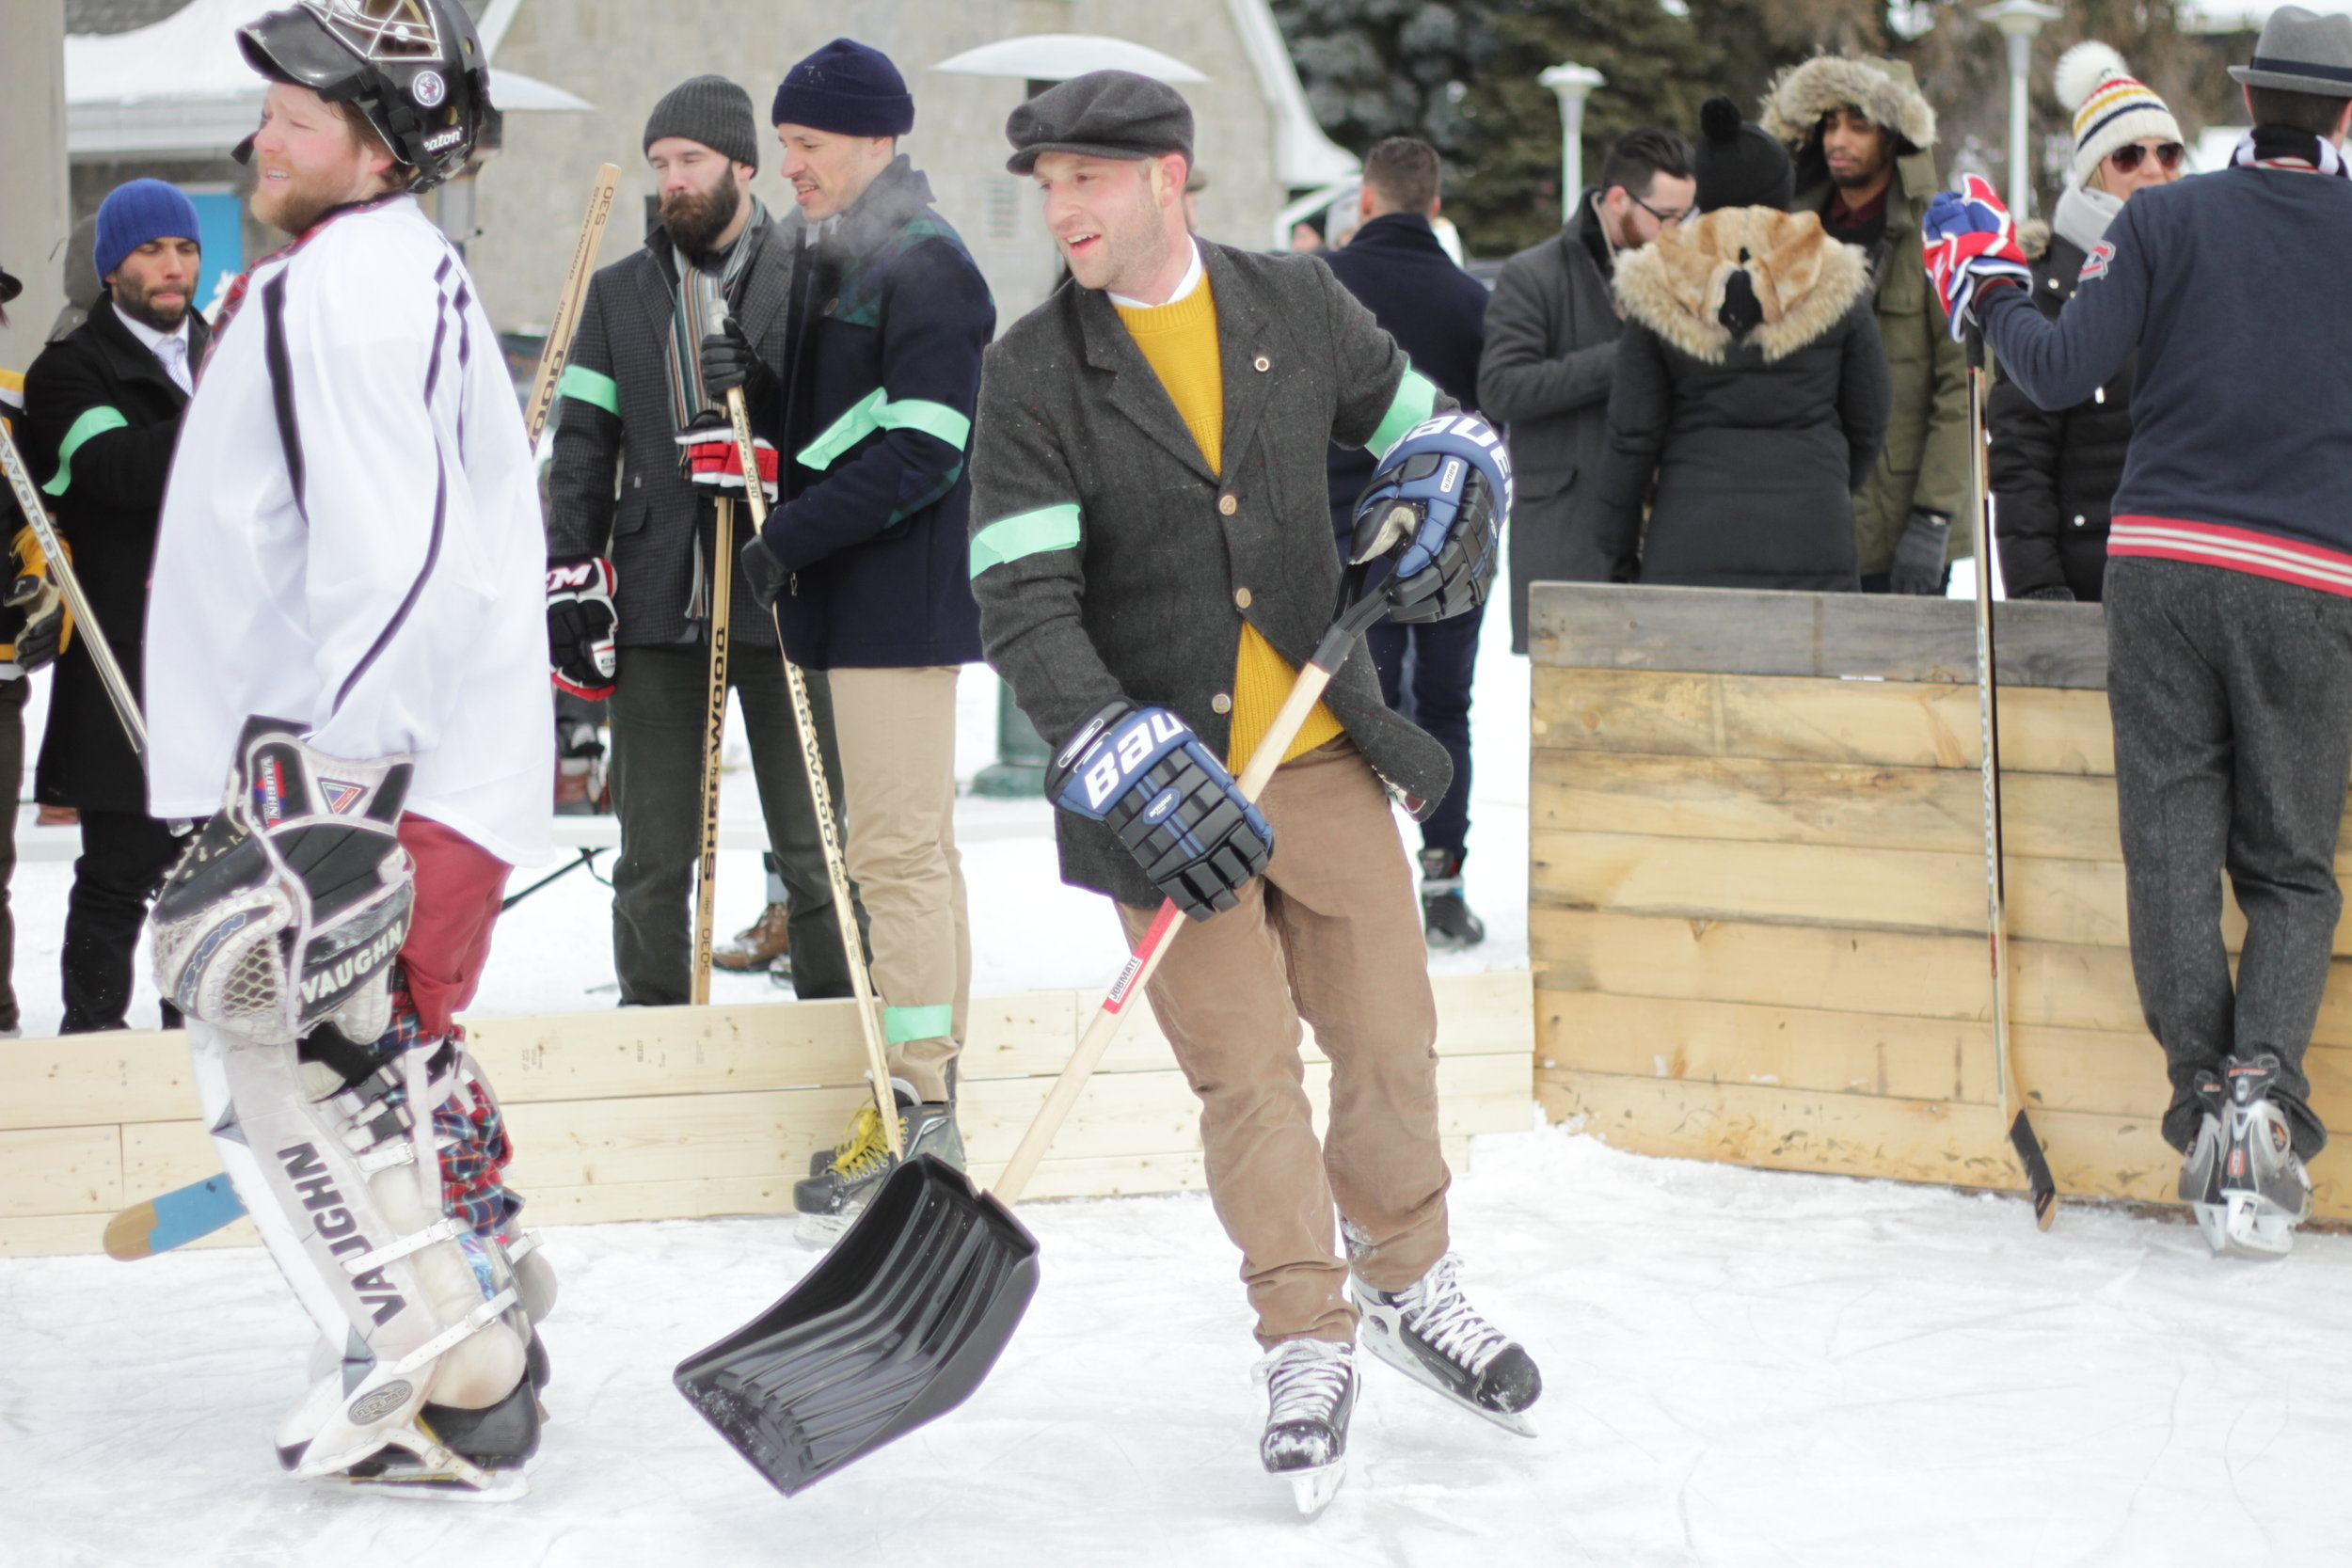 """The Clearing - During intermissions of a match, spectators are invited to go onto the ice to participate in a WRG Classic tradition called """"the clearing"""", which has developed to not only help clear the mounds of ice shavings that has piled up by the players skates, but to afford spectators an opportunity to slide about and socialize."""